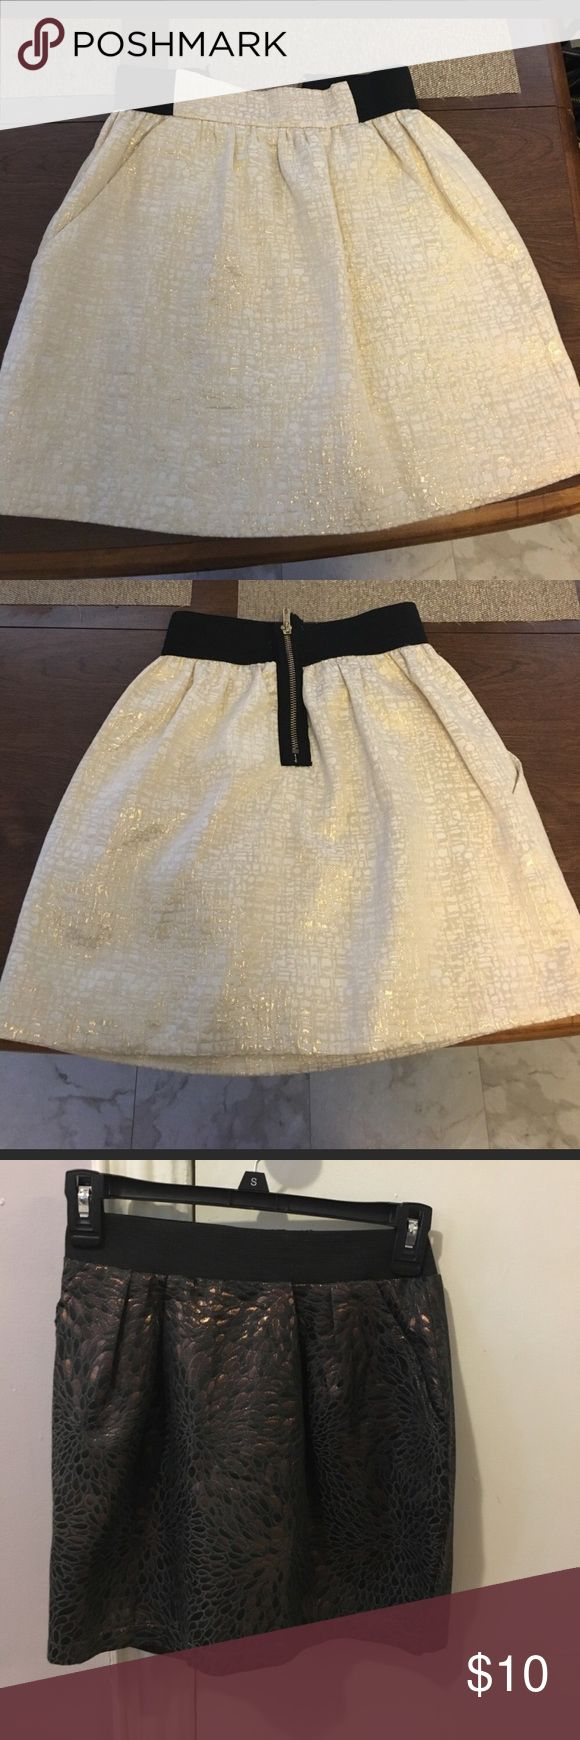 3 for $5 skirts for sale! 3 for 10$ - Charlotte Russe skirts in good condition Charlotte Russe Skirts Mini